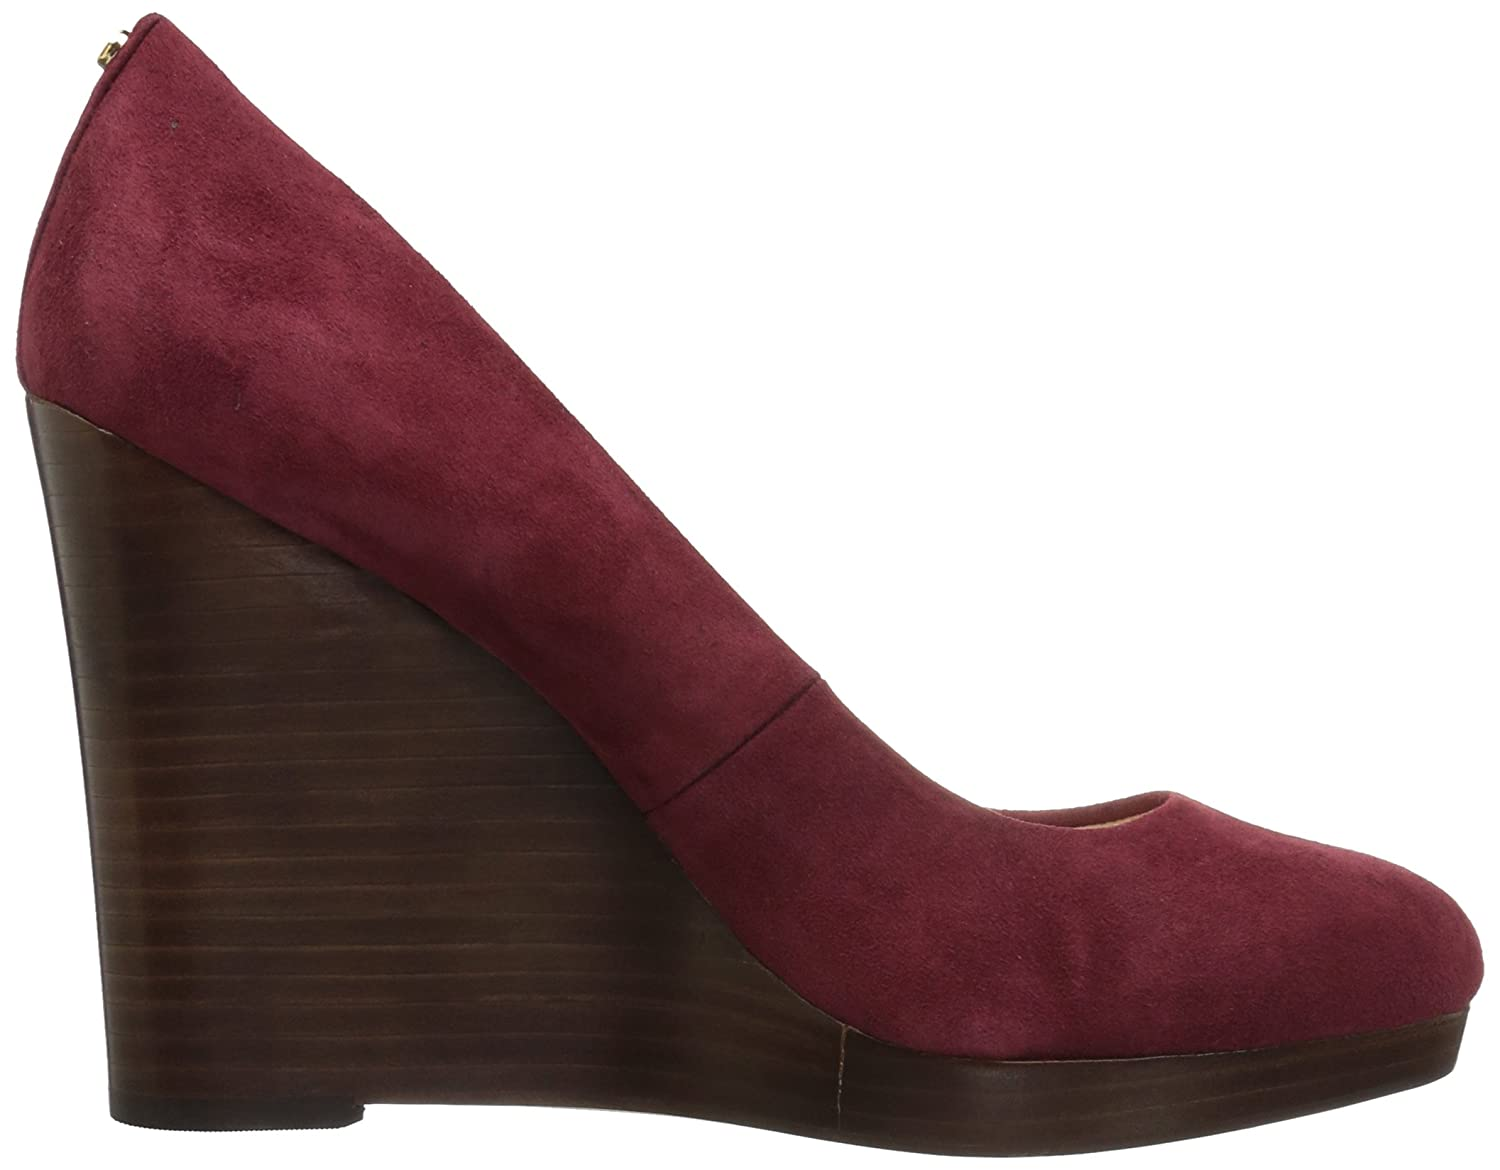 Nine West Women's Halenia Suede Wedge Pump B01N1NY68T 10.5 B(M) US|Wine Kid